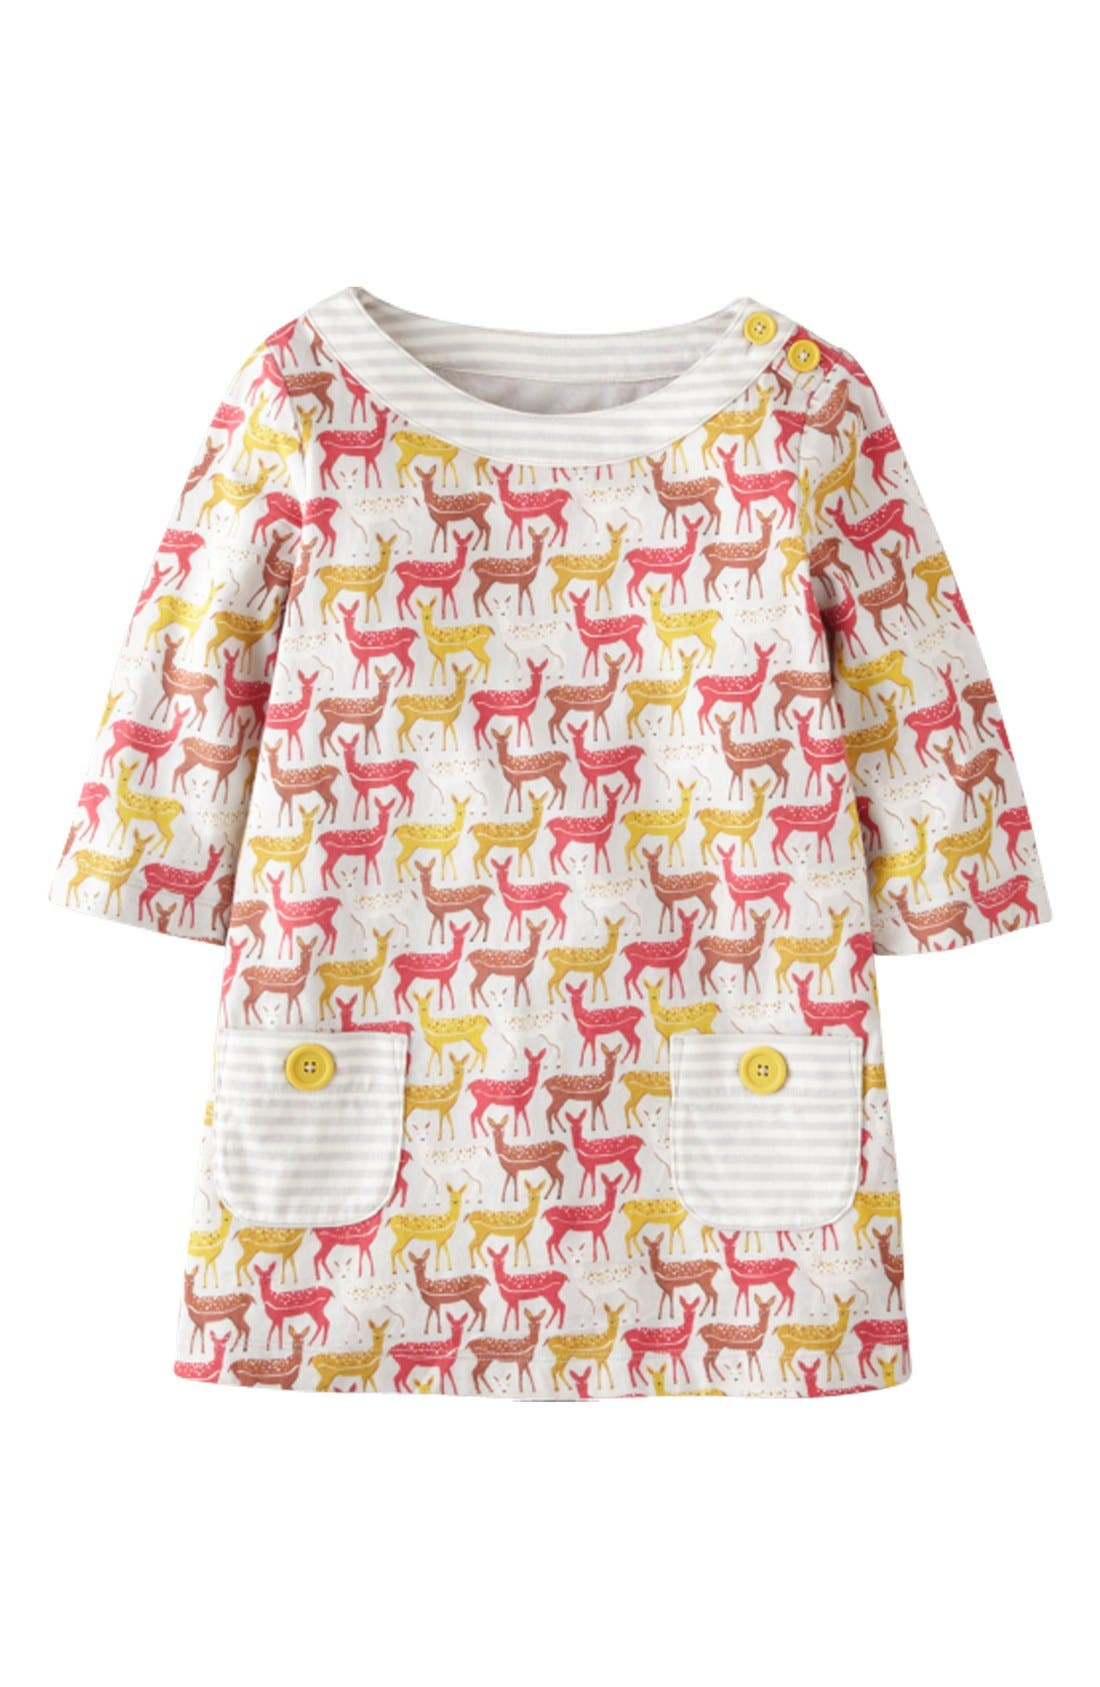 Alternate Image 1 Selected - Mini Boden Print Tunic Top (Little Girls & Big Girls)